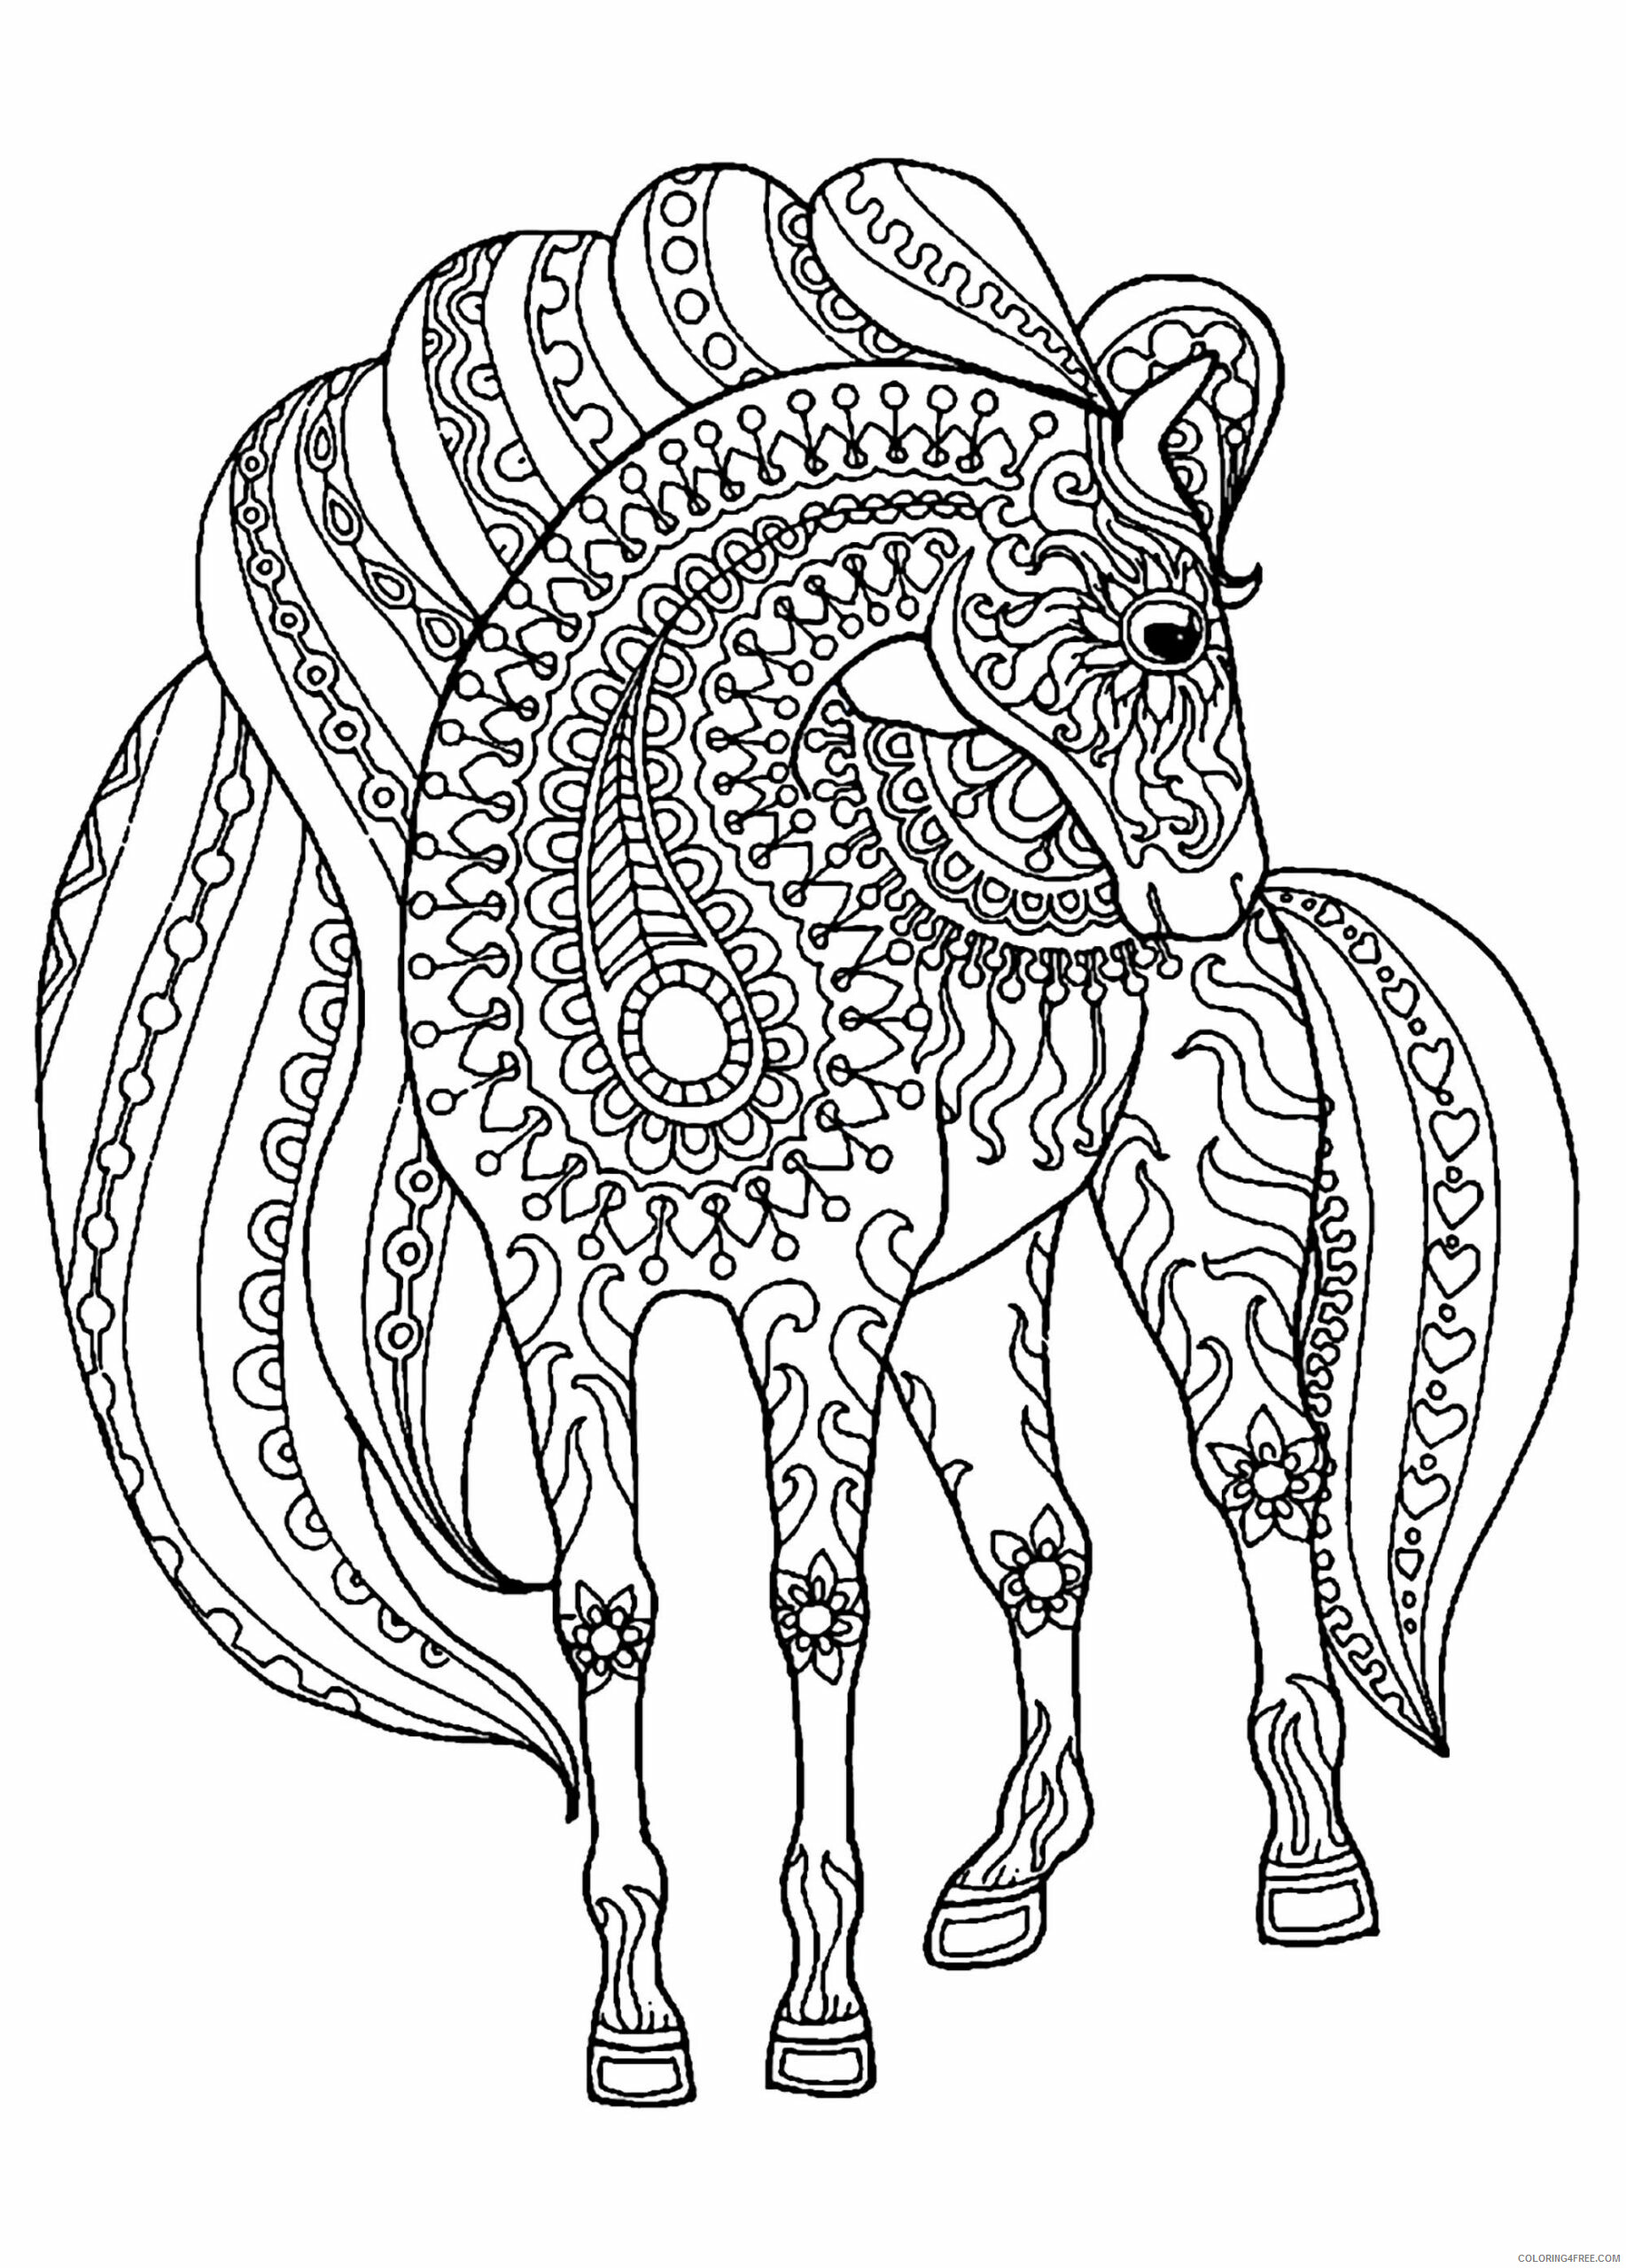 Adult Horse Coloring Pages Printable Horse for Adults Printable 2020 418 Coloring4free